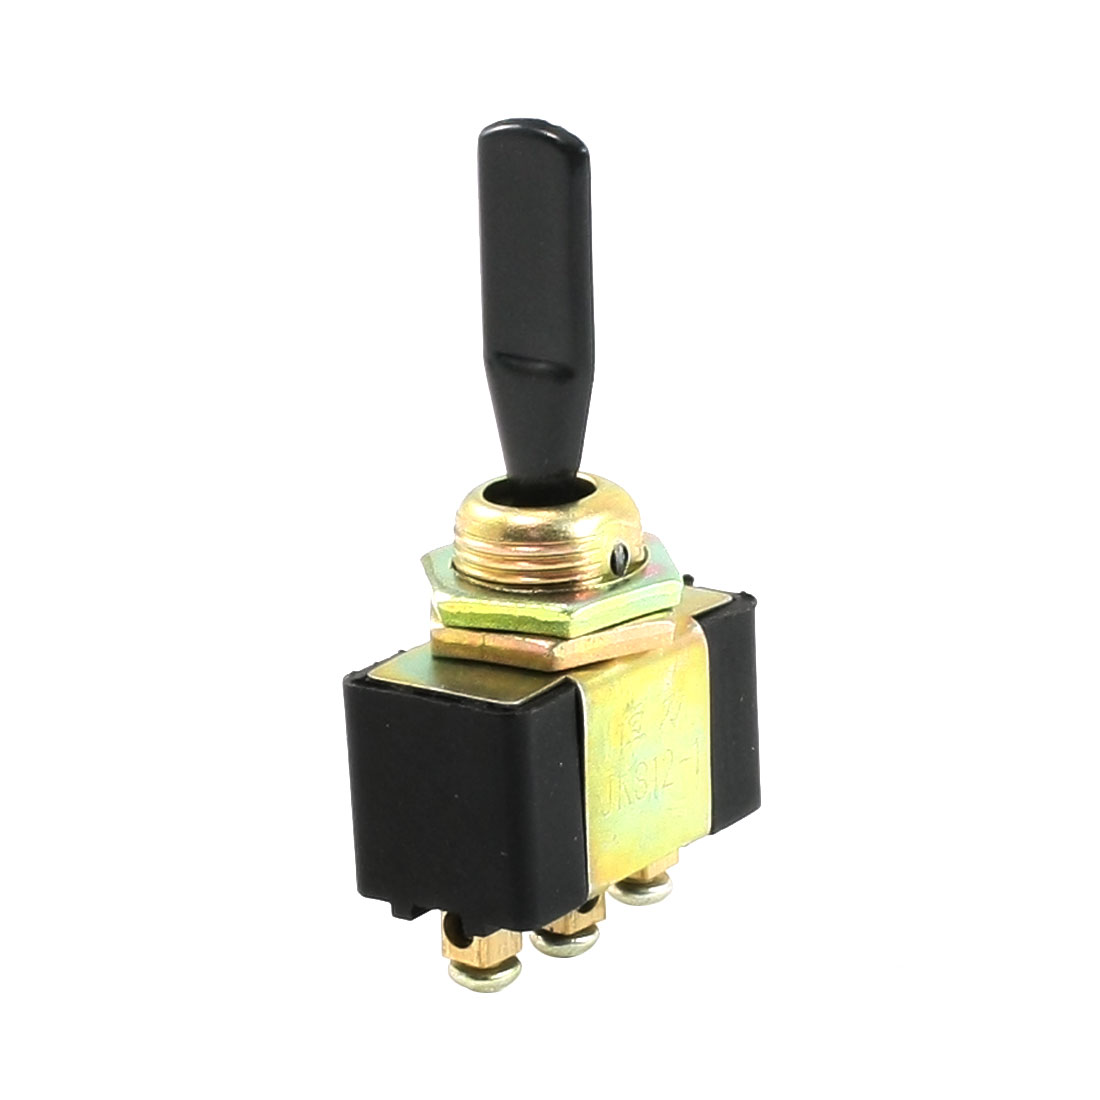 AC 2A/250V SPDT ON/OFF/ON 3 Ways Latching Toggle Switch